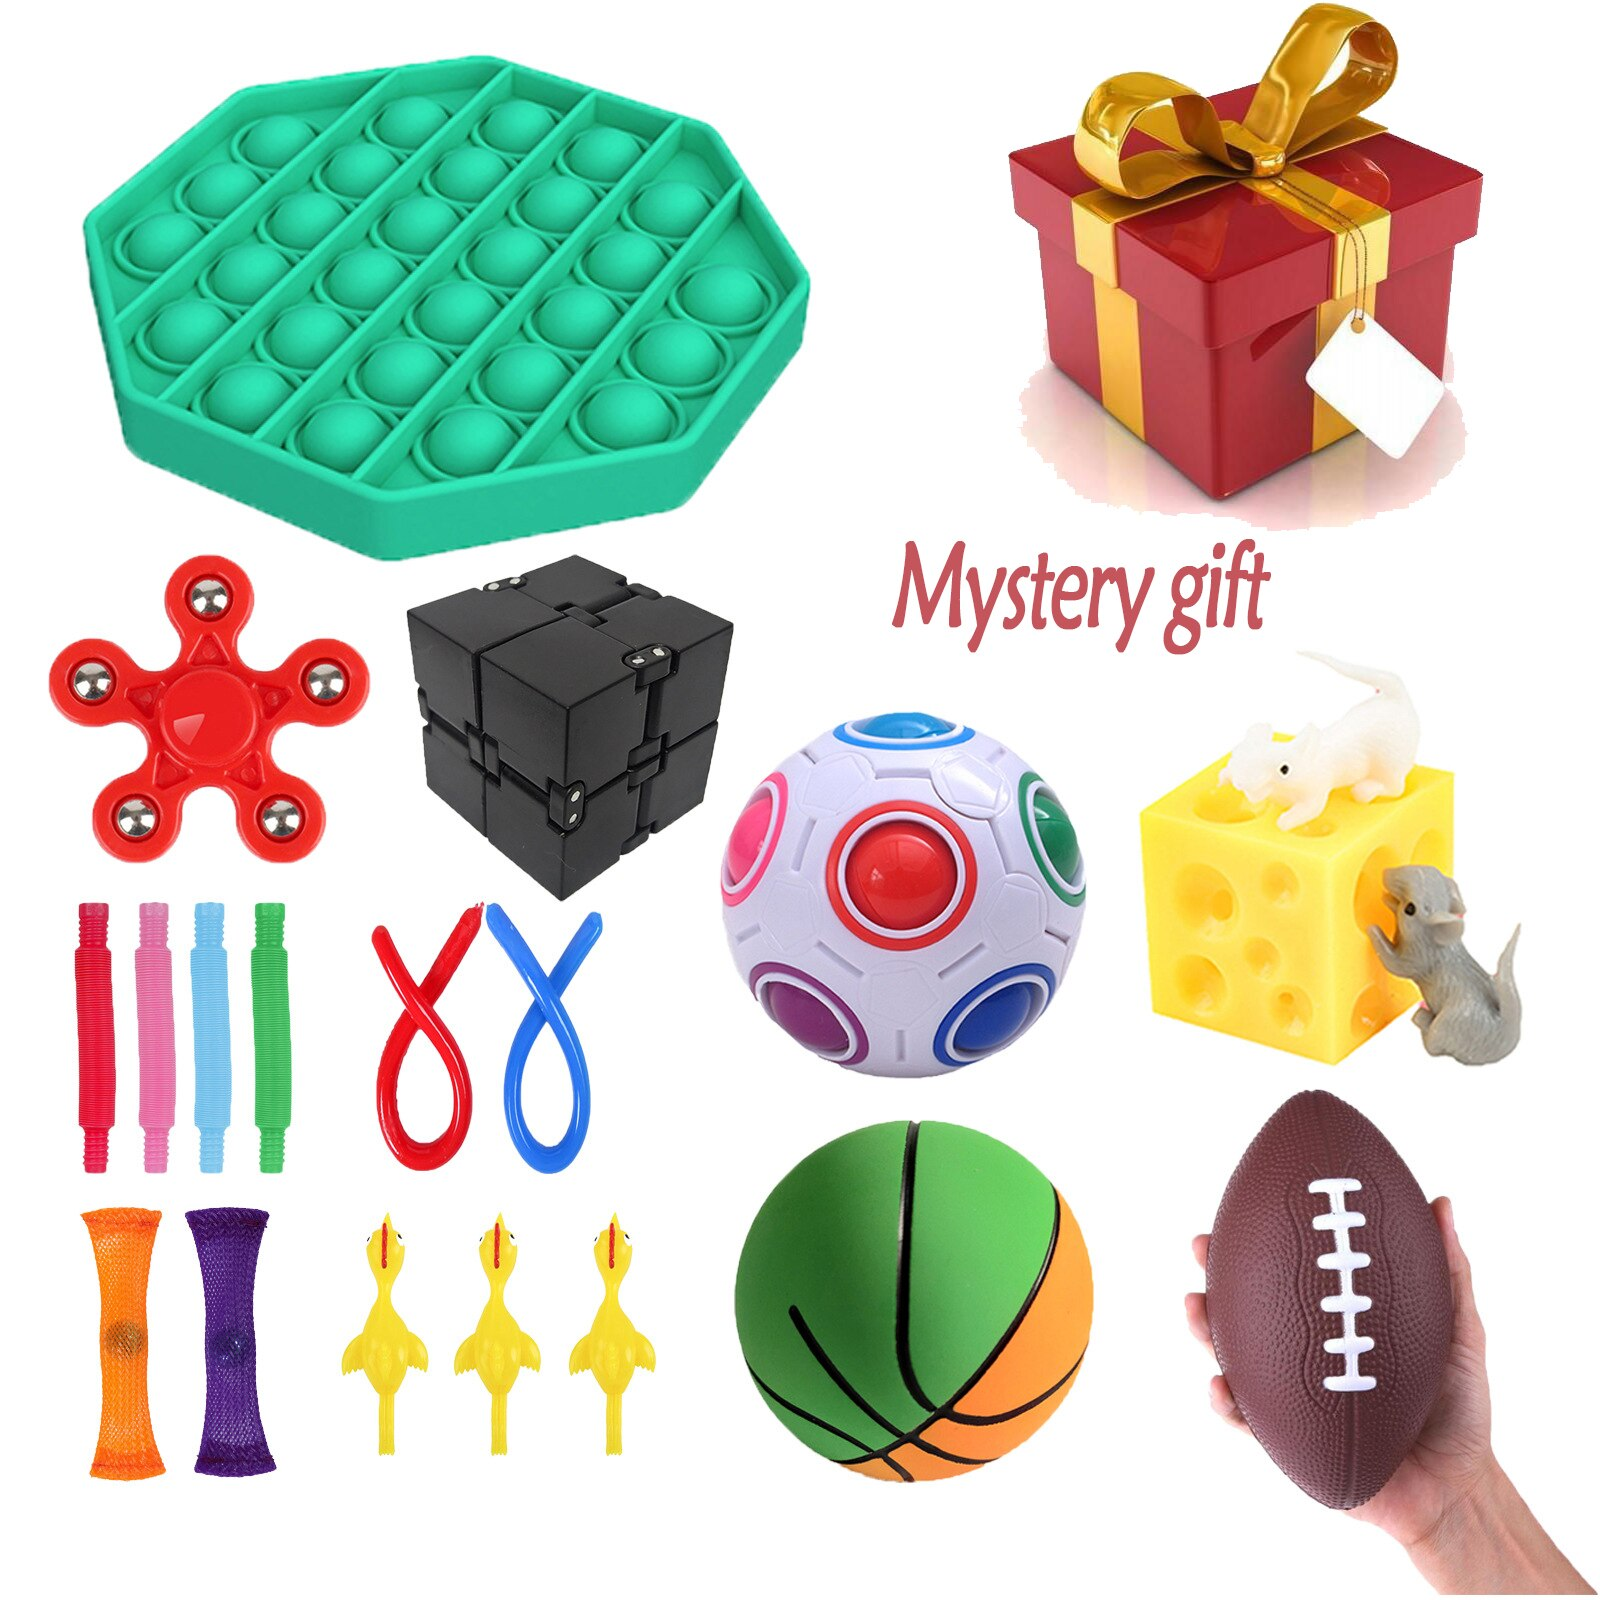 Fidget Sensory Toy Stress Anxiety Relief Autism Toys Set Pops it Bubble Fidget Sensory Toys Decompression Gift For Kids Adults